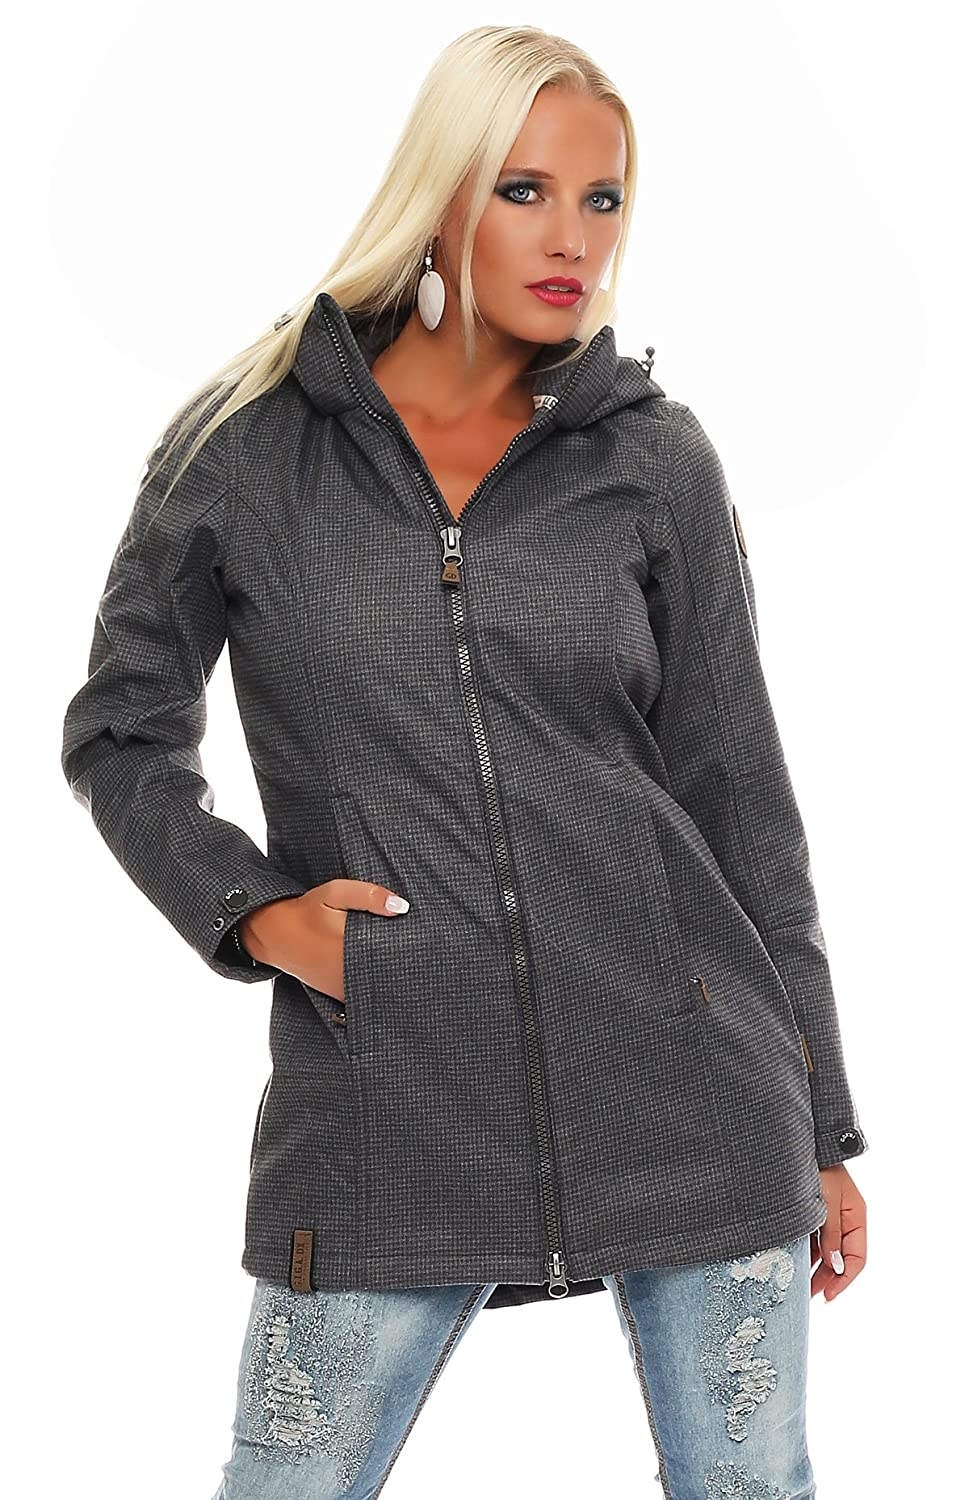 G.I.G.A. DX by Killtec Damen Softshell Parka Mantel ZARIE